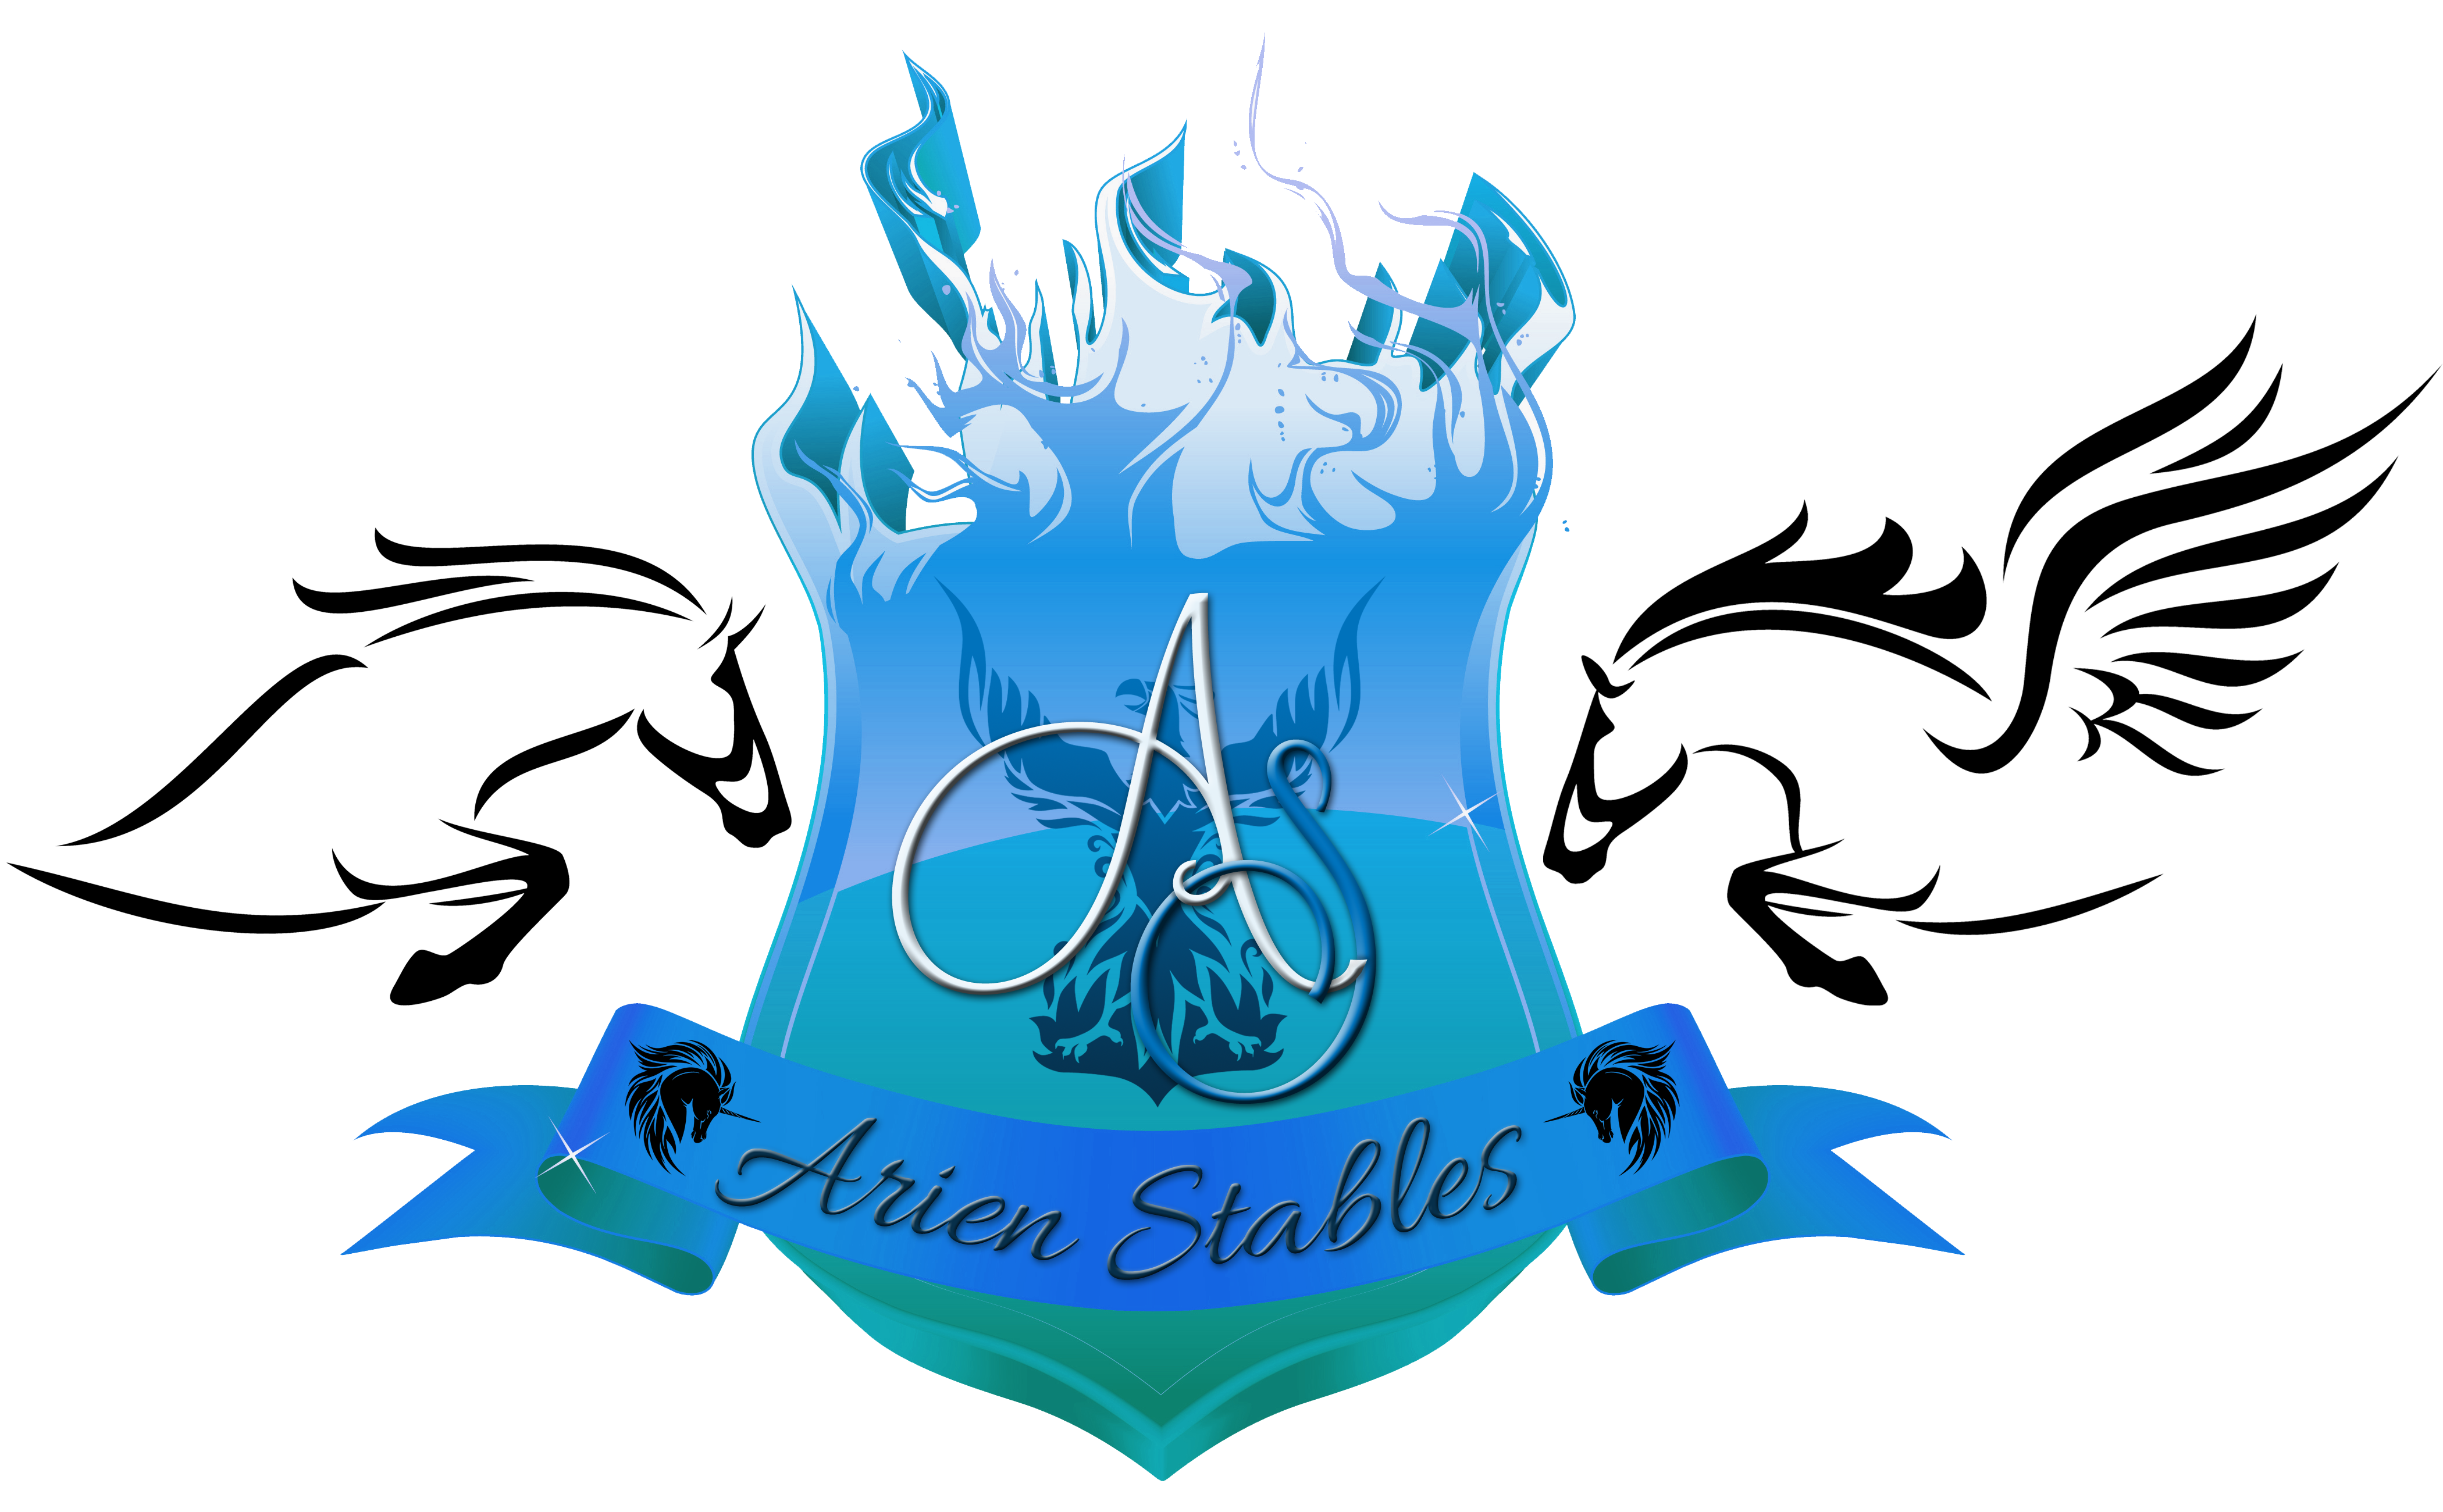 Arien Stables